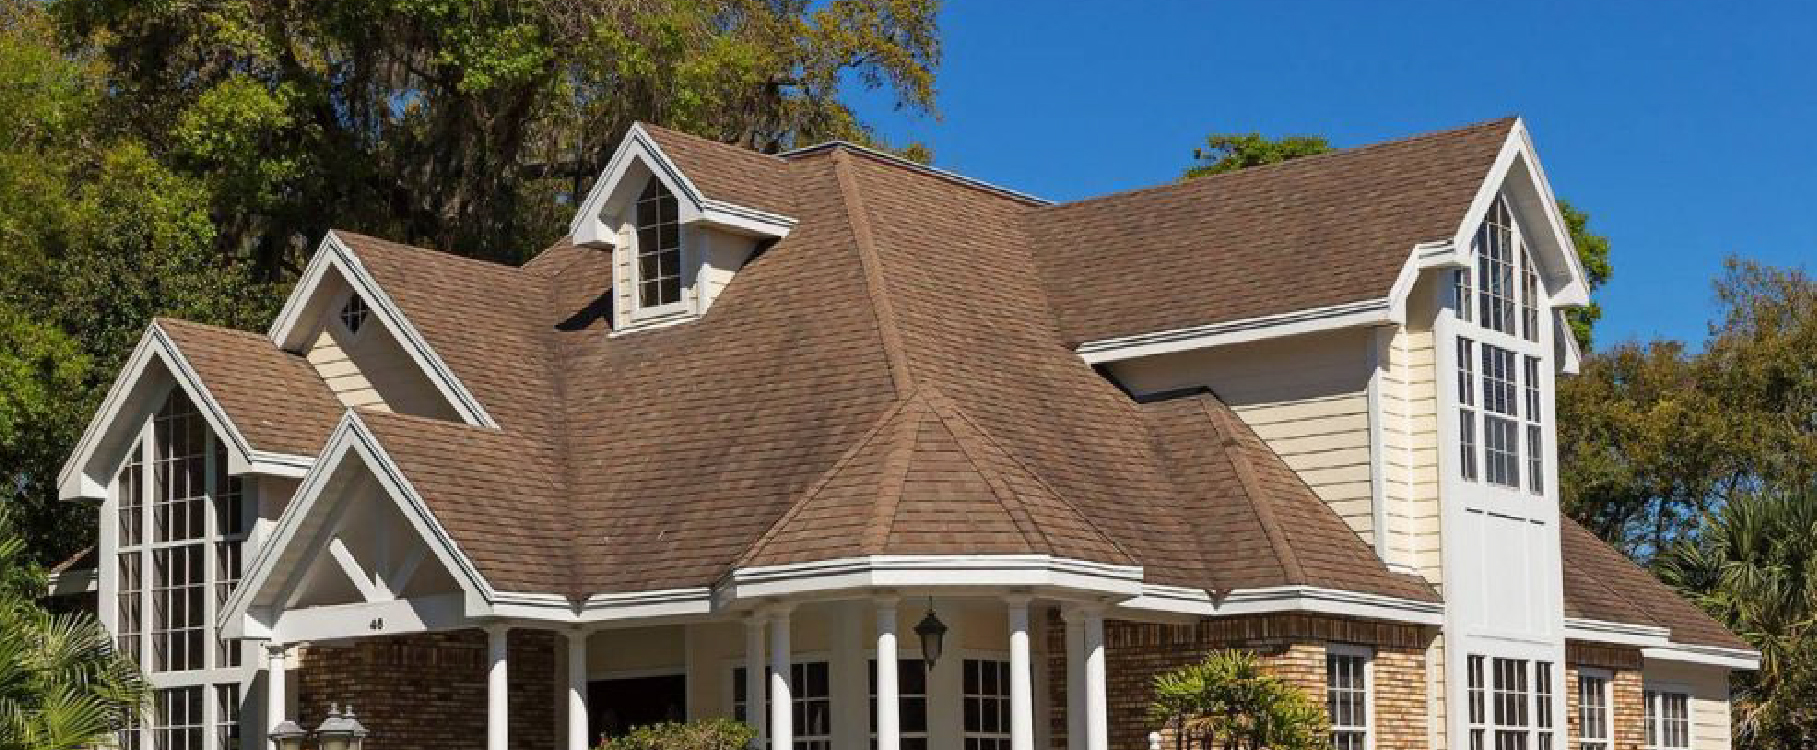 Blog 3roofing image